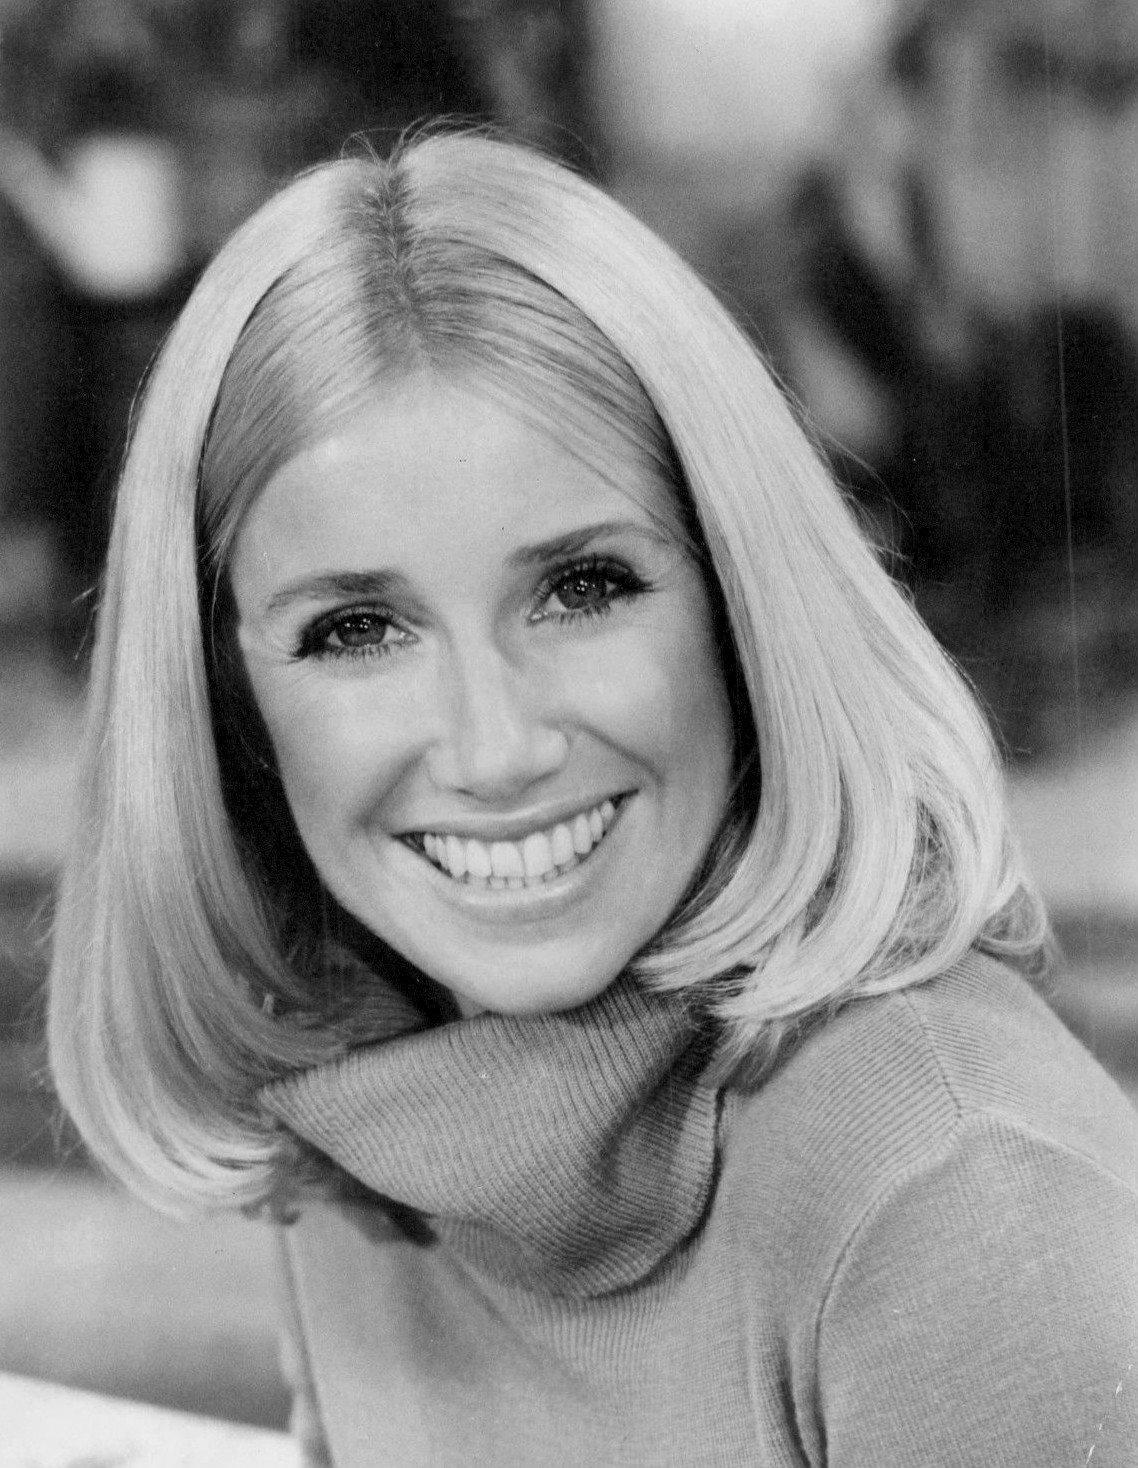 A 1977 photo of Suzanne Somers.   Source: Wikimedia Commons